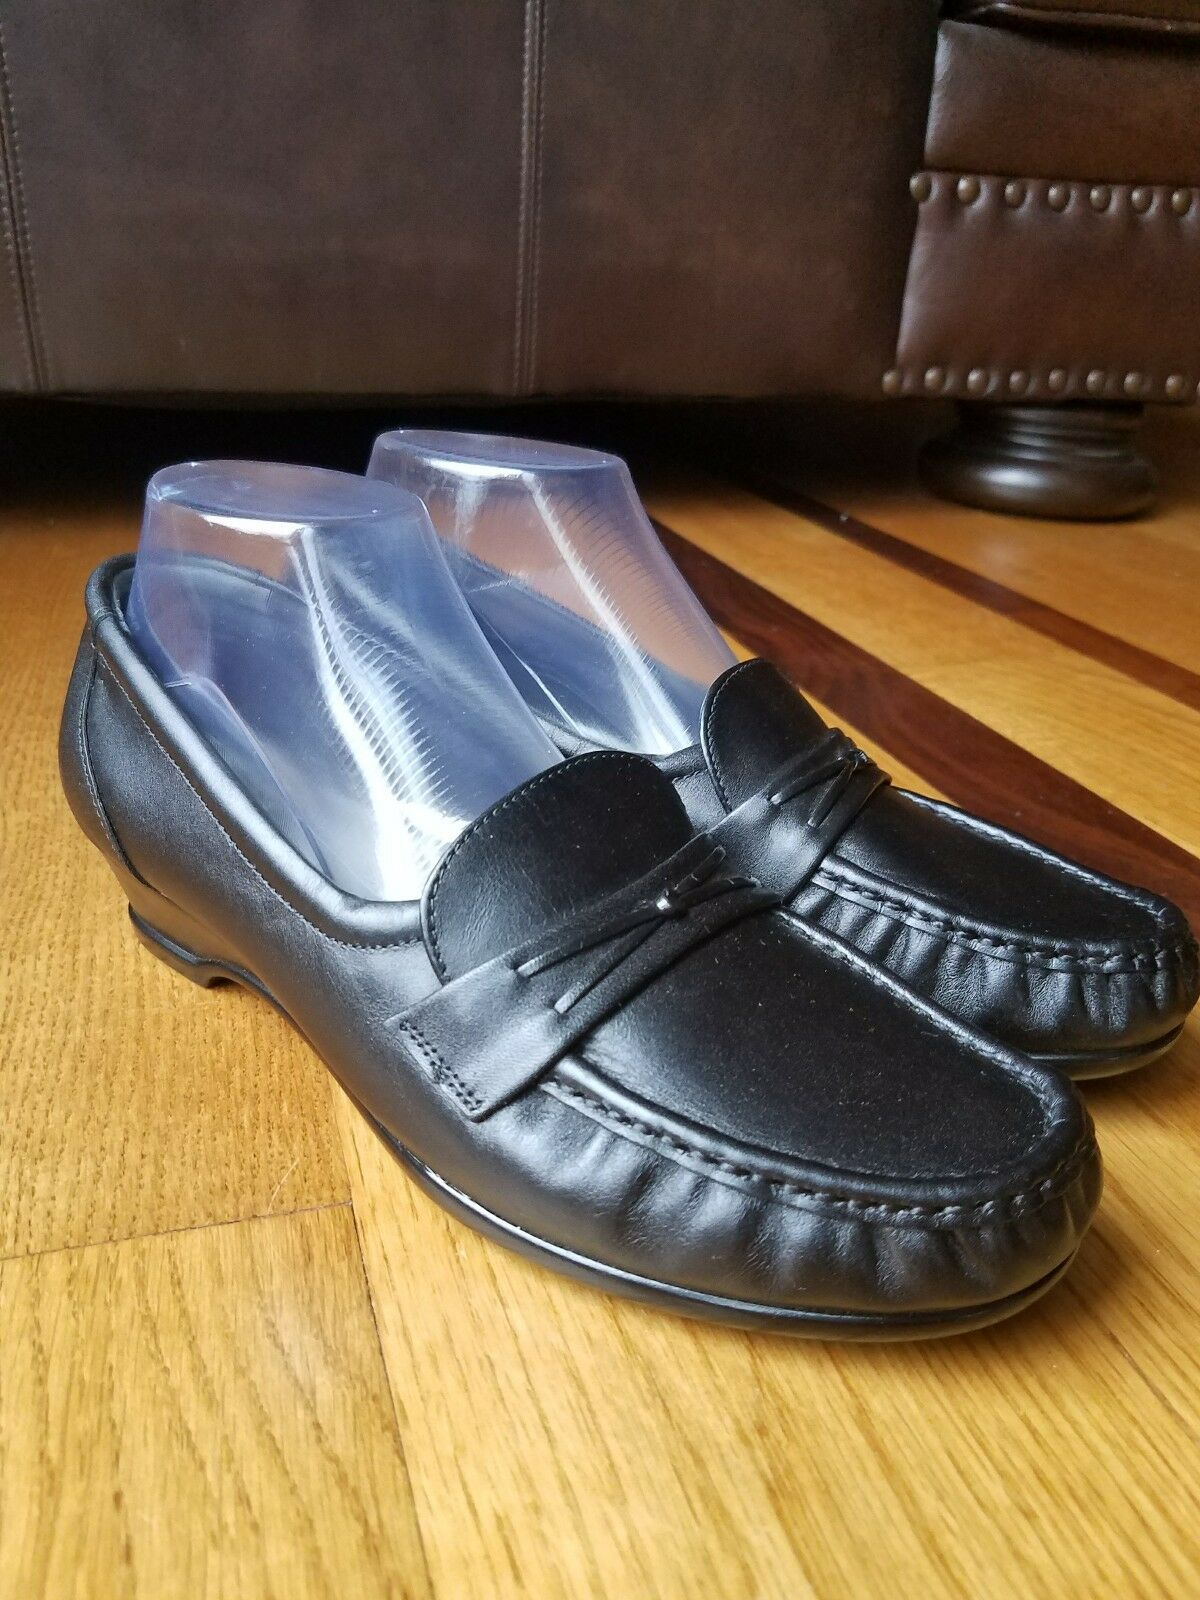 SAS Easier Women's Black Leather Tripad Comfort Slip-On Low Heel shoes Sz 9.5 M